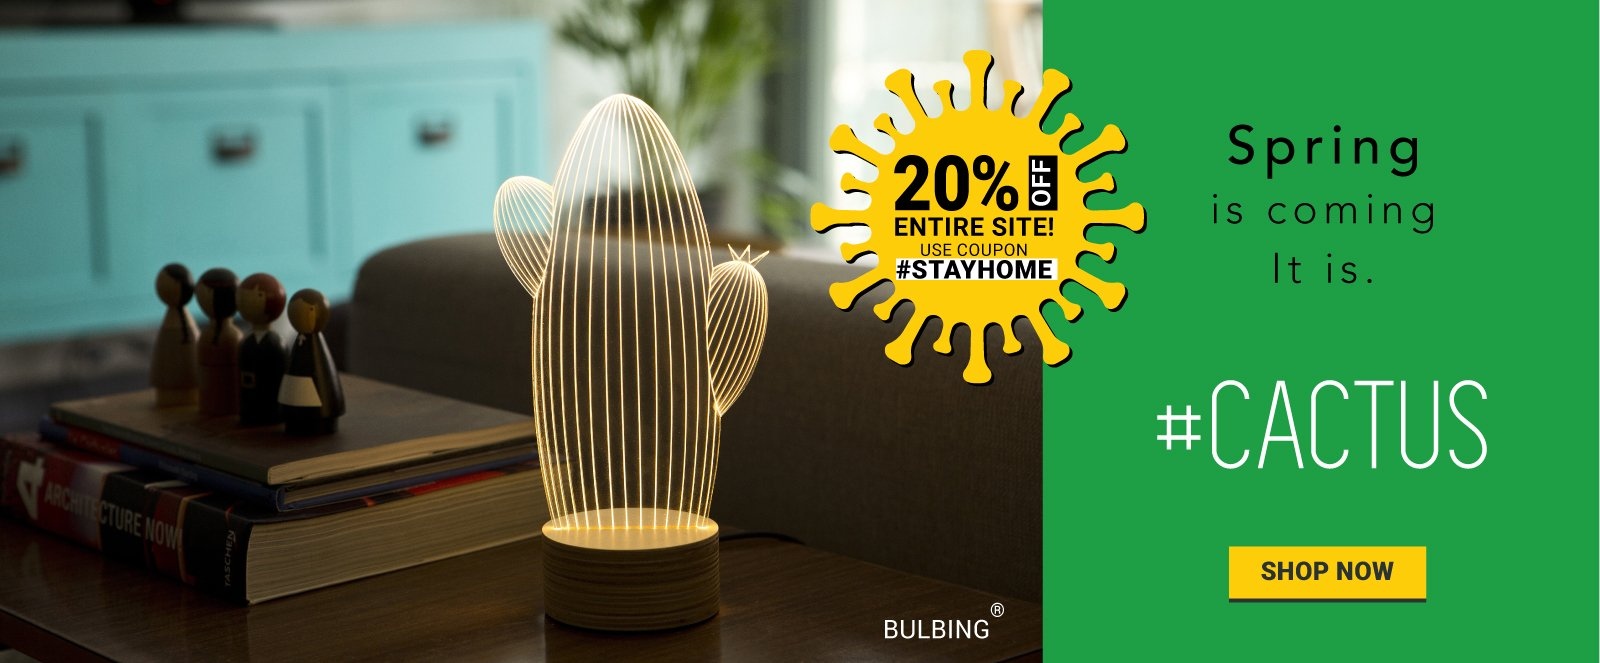 https://www.bulbing-light.com/products/bulbing-lamp-cactus